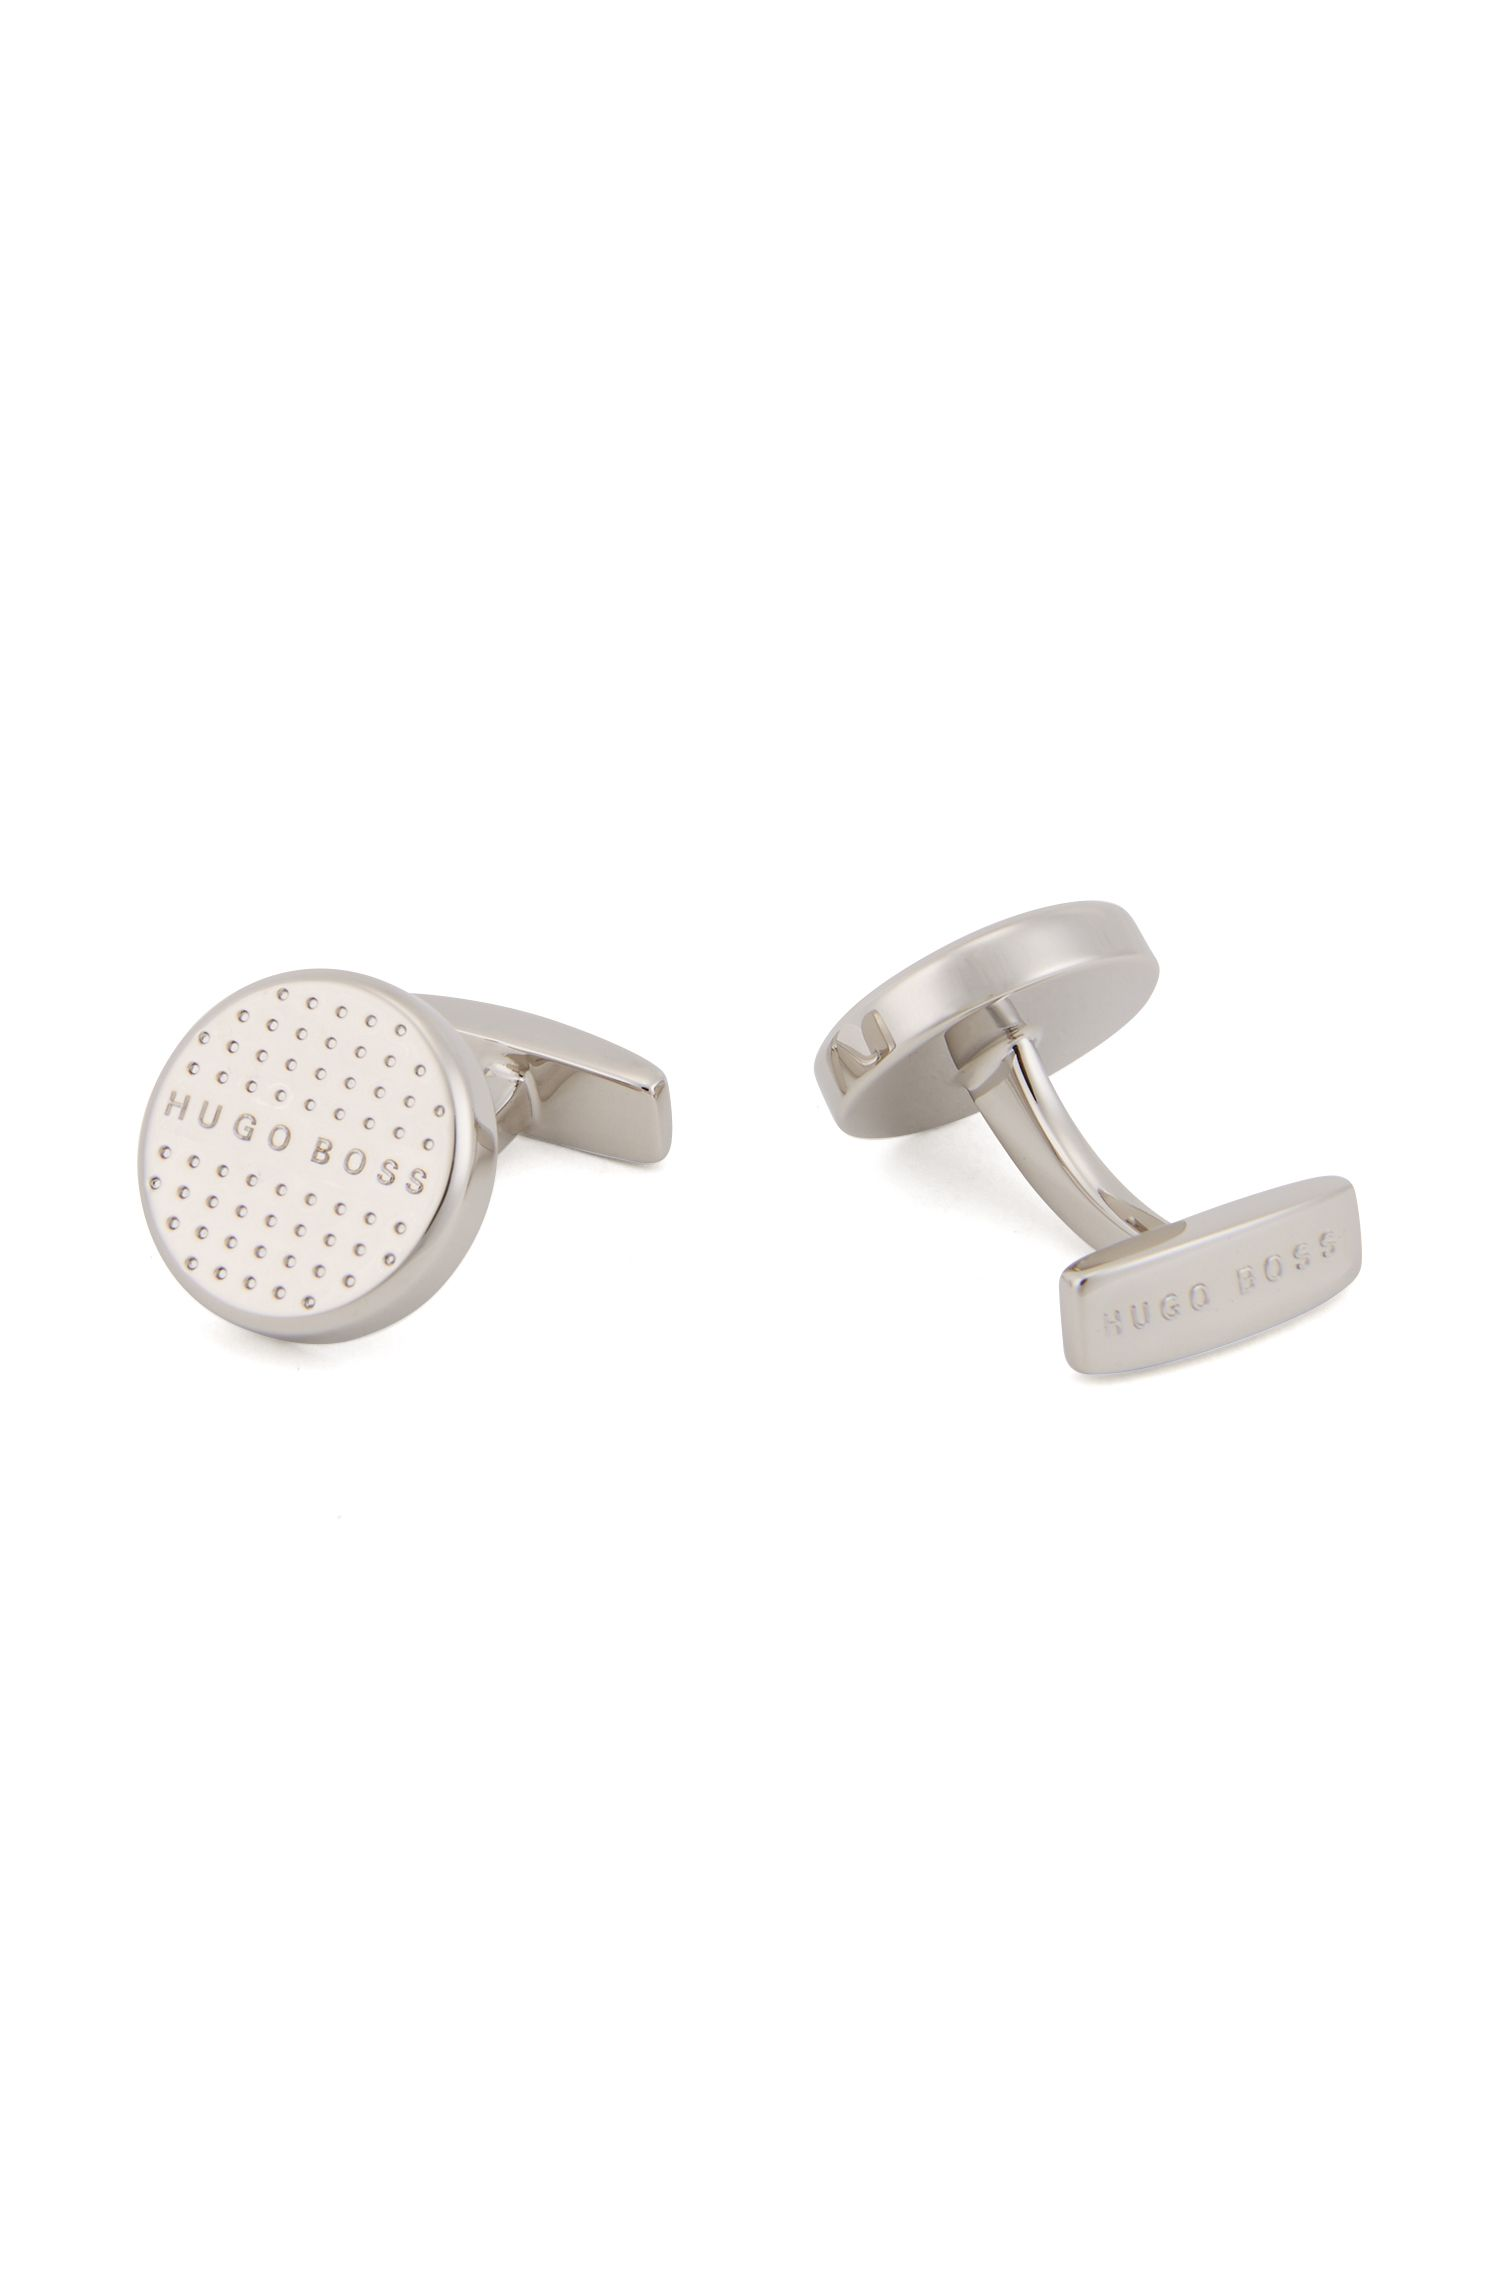 Hand-polished brass cufflinks with engraved polka dots